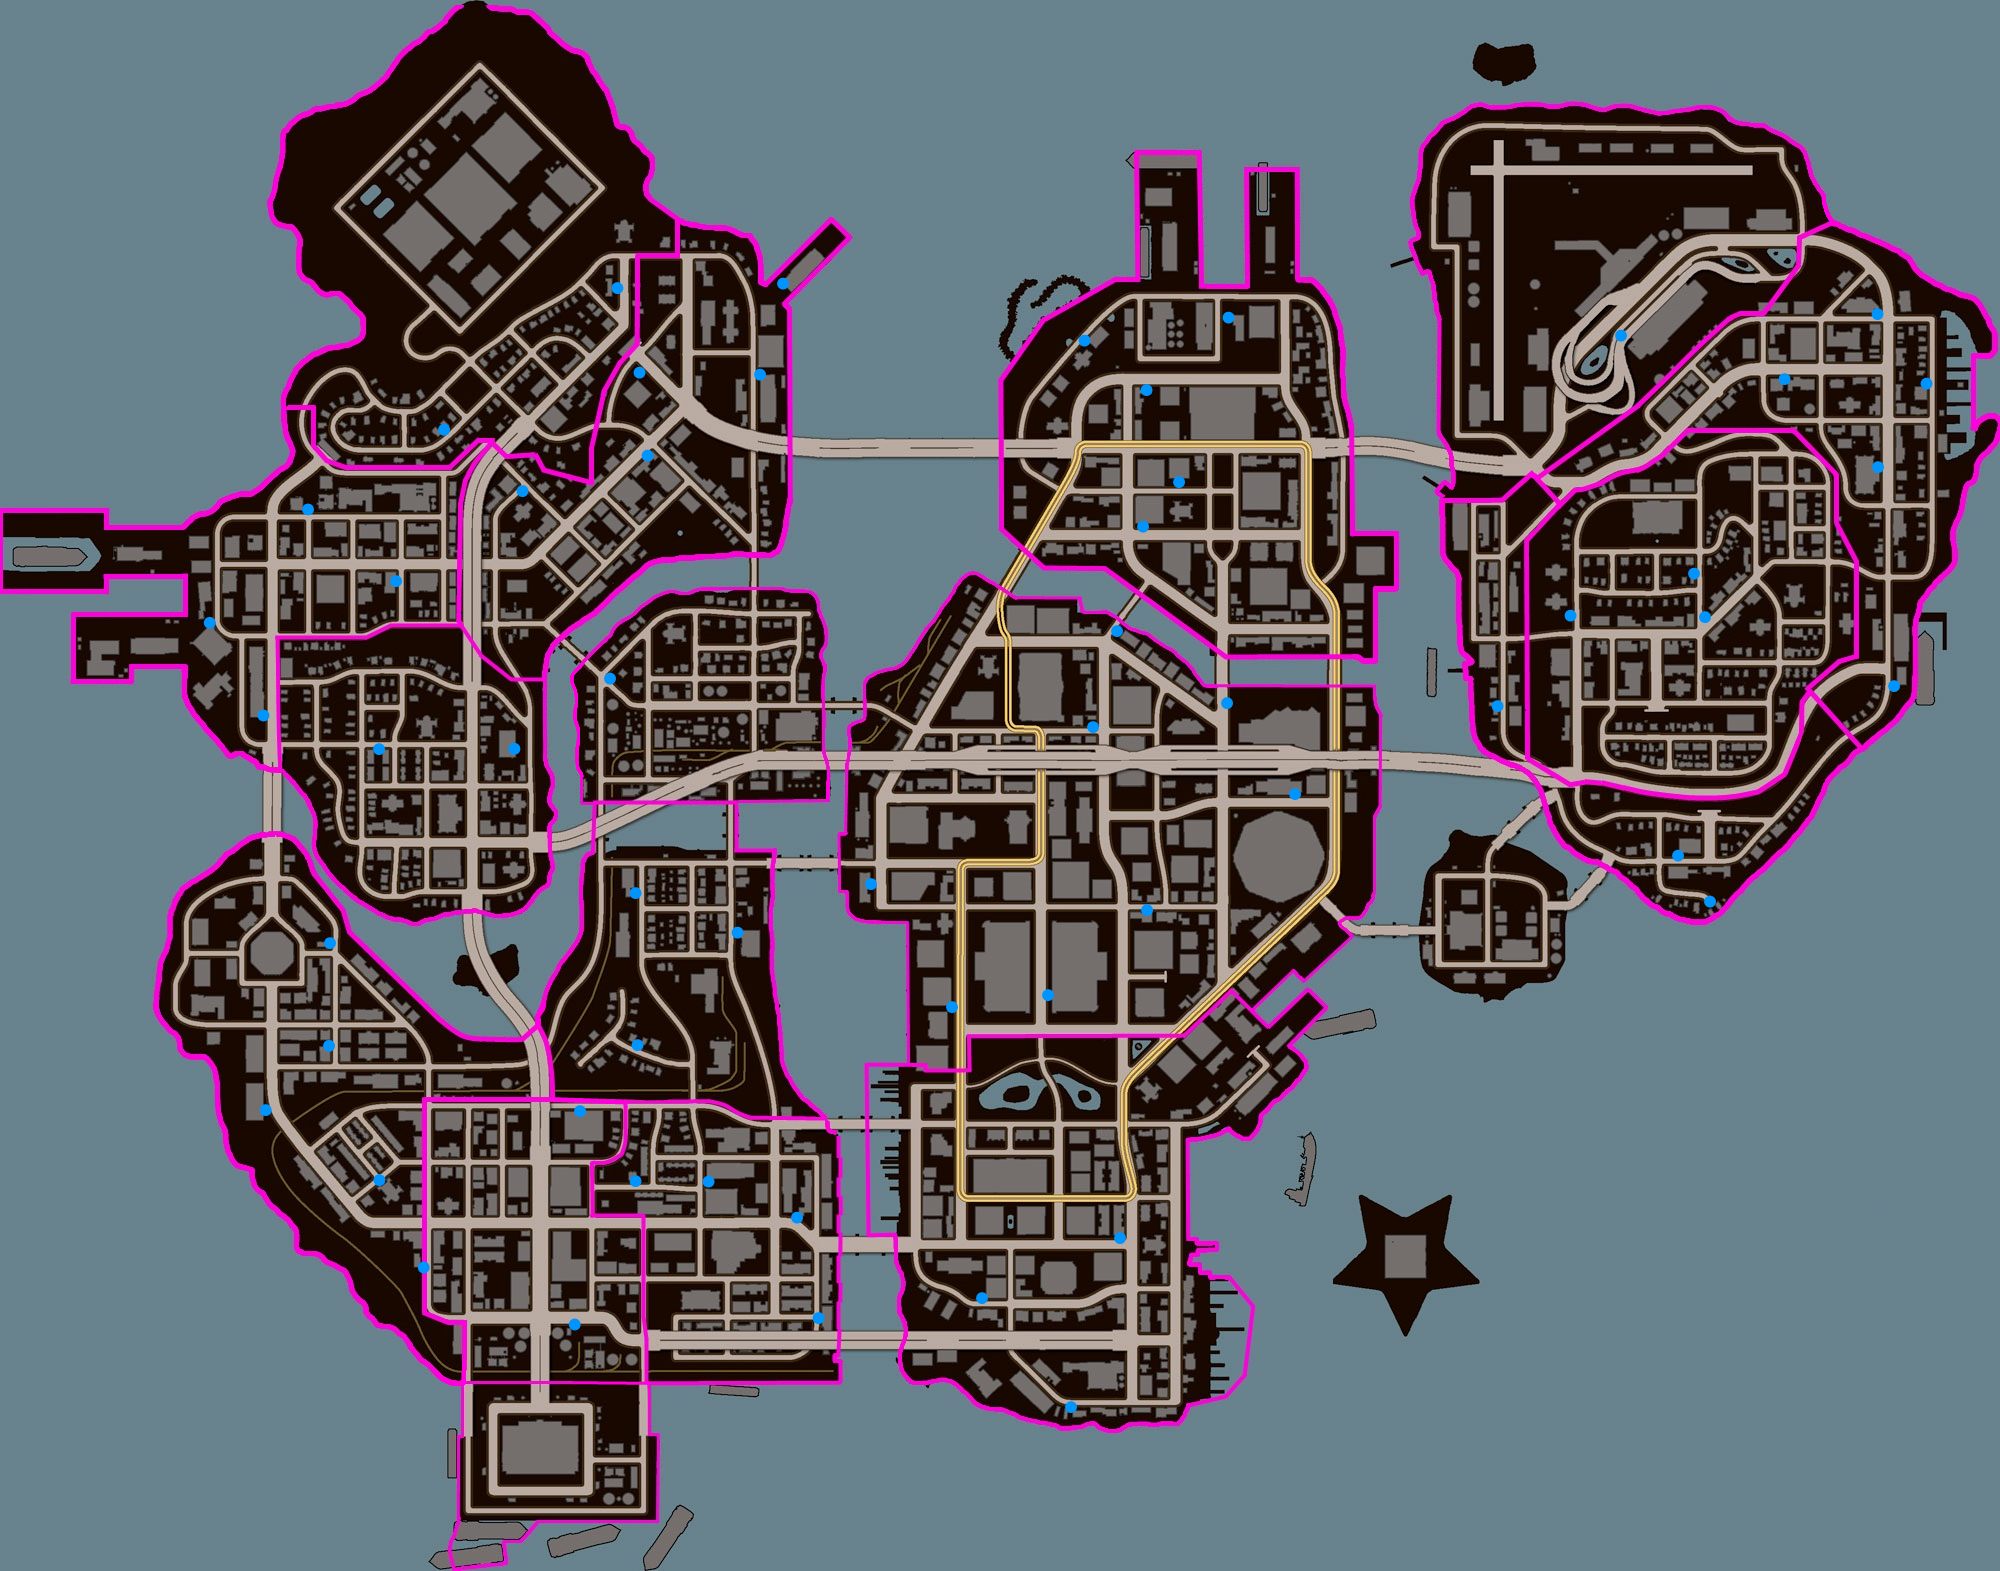 Activities and Diversions in Saints Row: The Third | Saints ... on saints row 2 cd map, saints row 3 cd locations map, saints row symbol, saints row cd locations and tag, saints row cd locations interactive map, saints row 1cd locations, saints row 2 secret locations, saints row 2 museum gift shop,